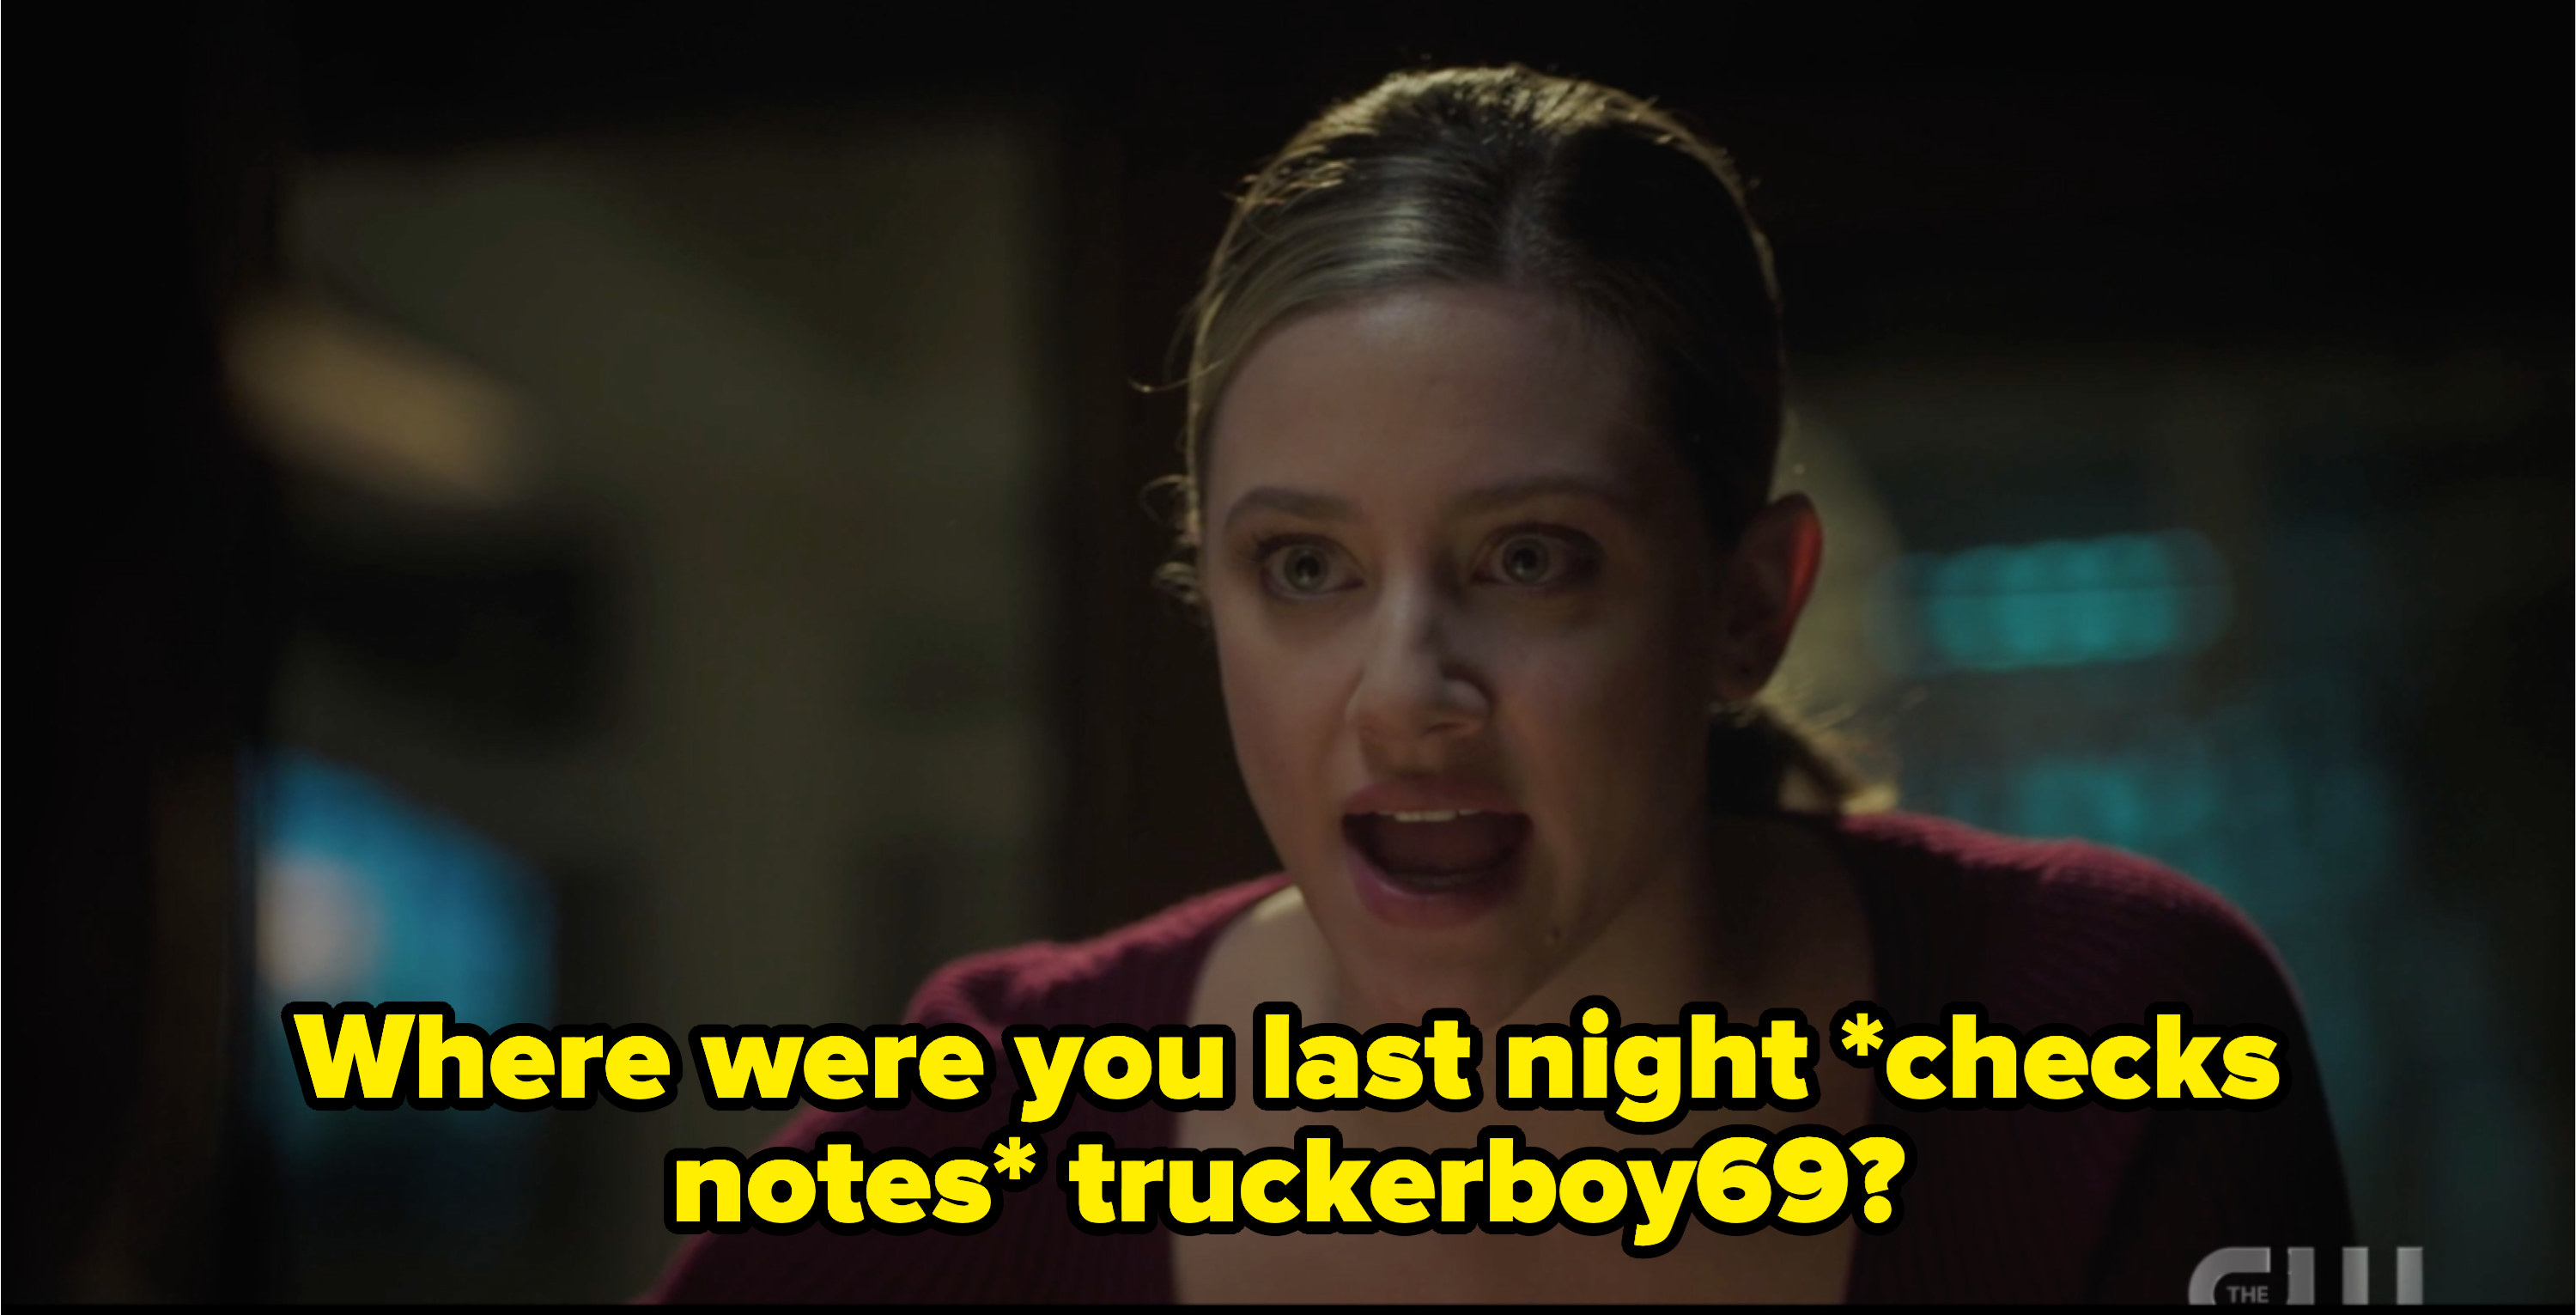 """Betty asks her witness, """"where were you last night (checks notes truckerboy69)?"""